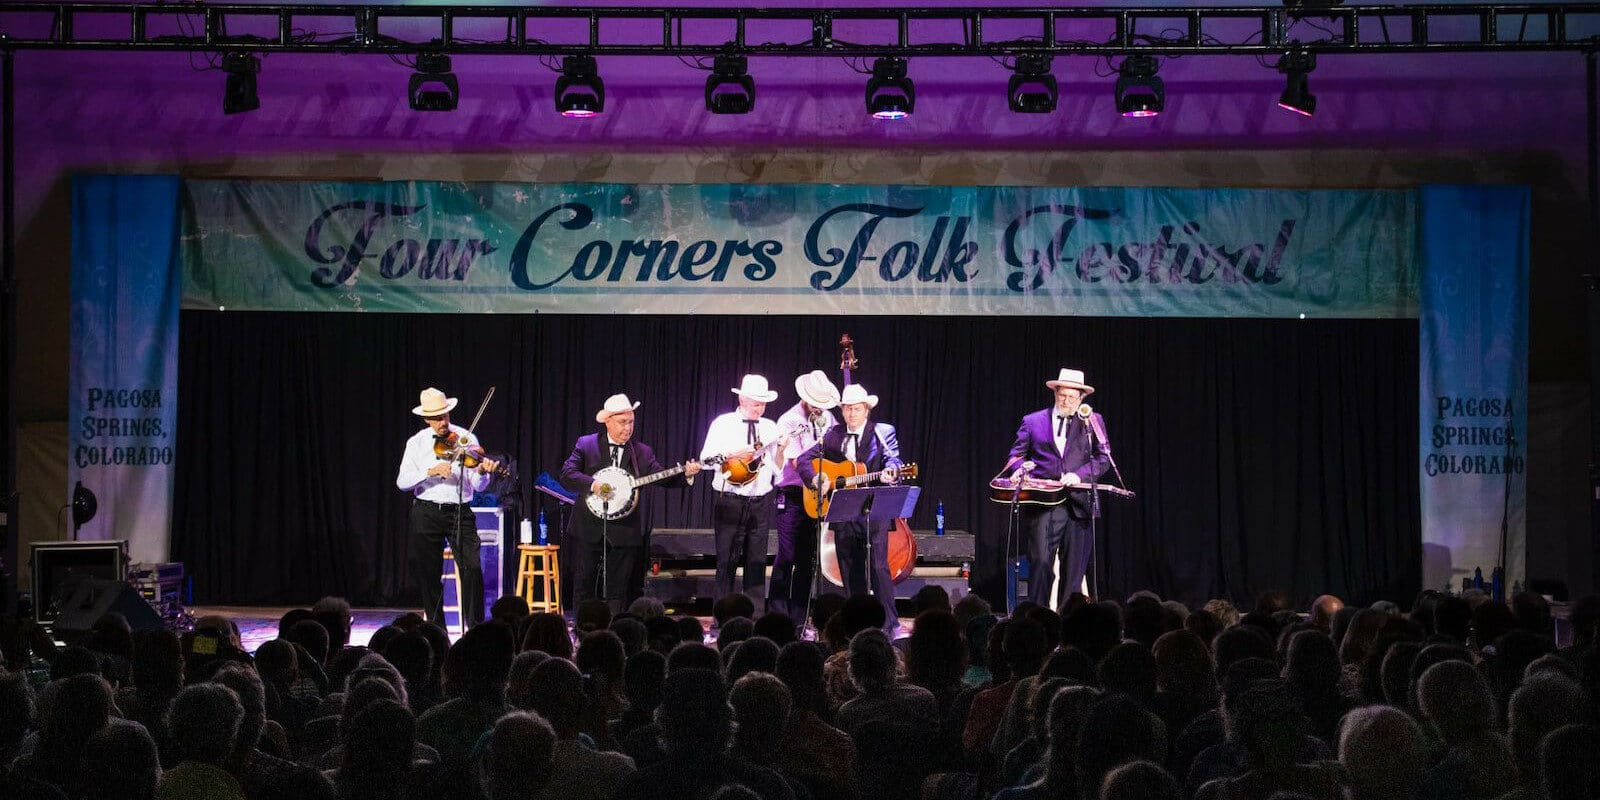 Image of the main stage at Four Corners Folk Festival in Pagosa Springs, Colorado